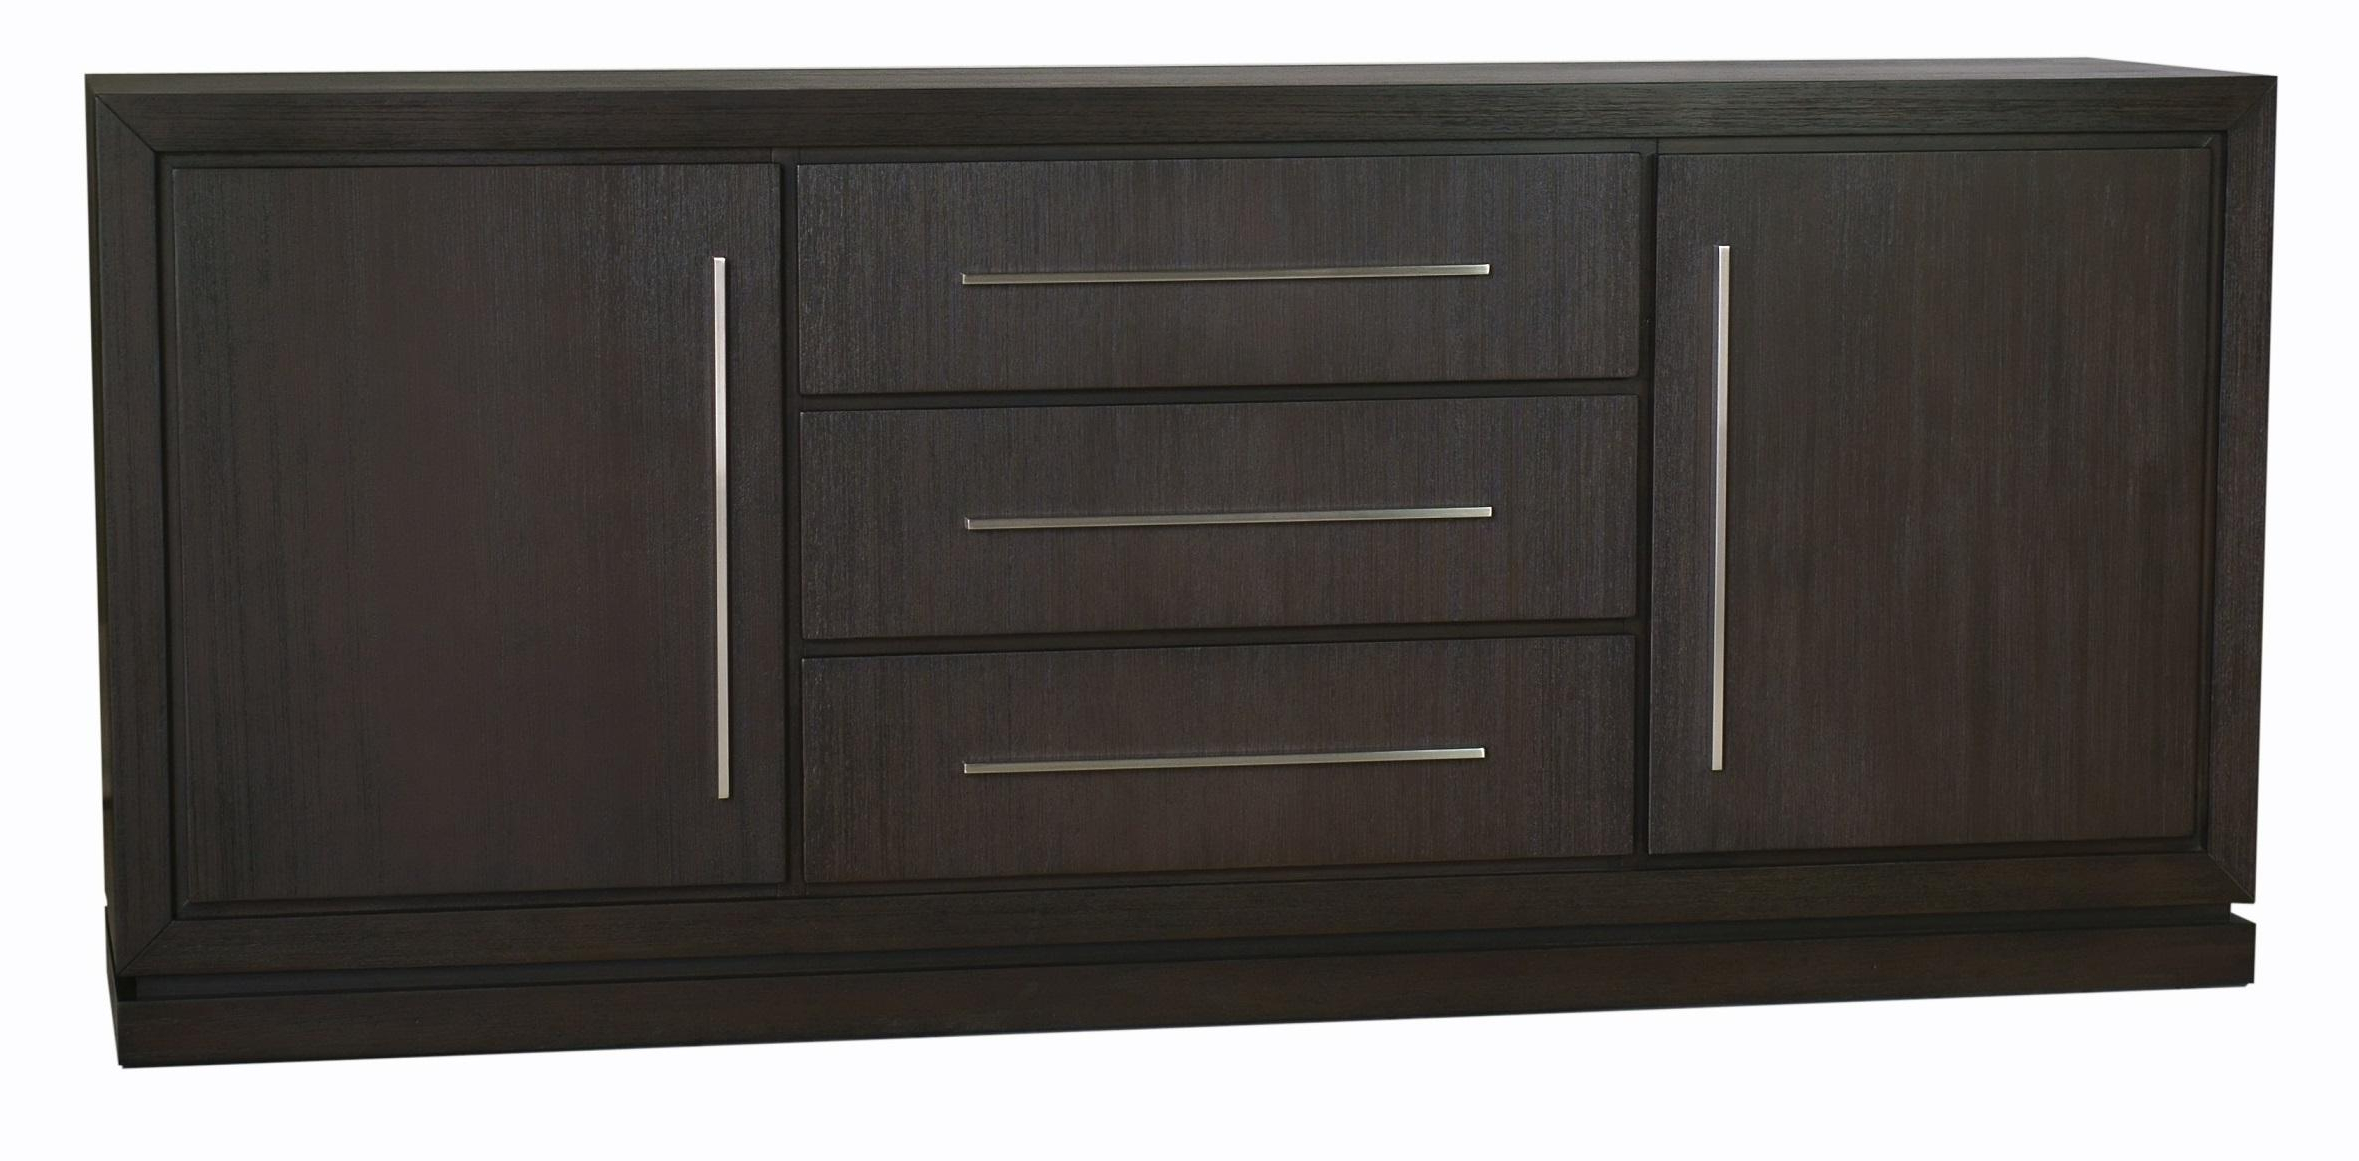 Trendy 3 Drawer And 2 Door Cabinet With Metal Legs Intended For Portofino 3 Drawer & 2 Door Cabinet Storage (em Pfb (View 10 of 20)